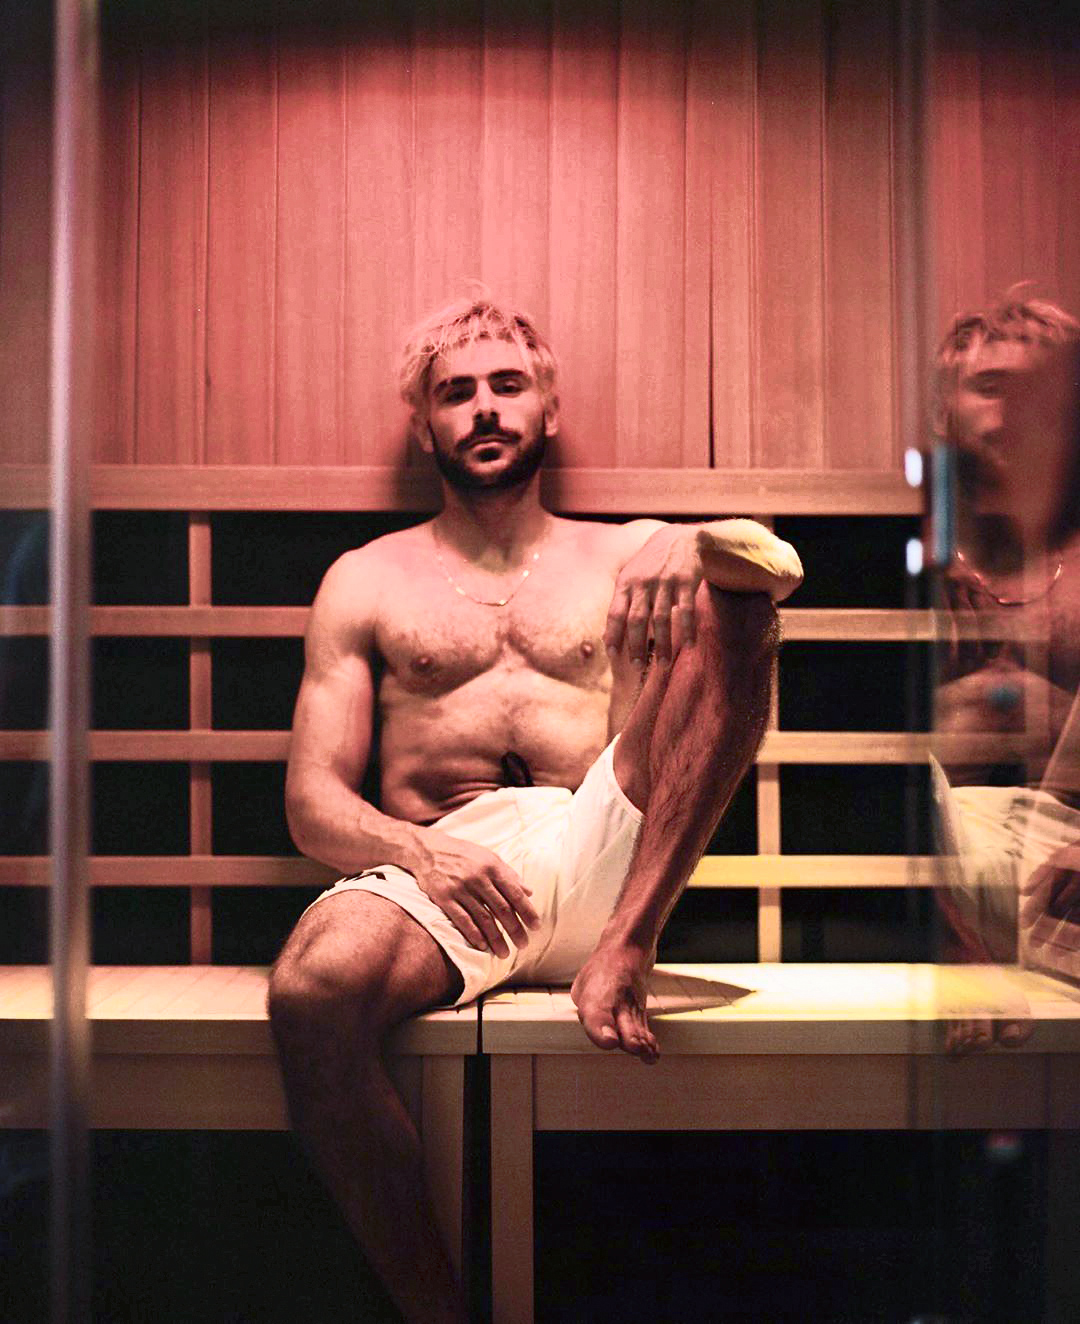 zac efron in sauna instagram photo